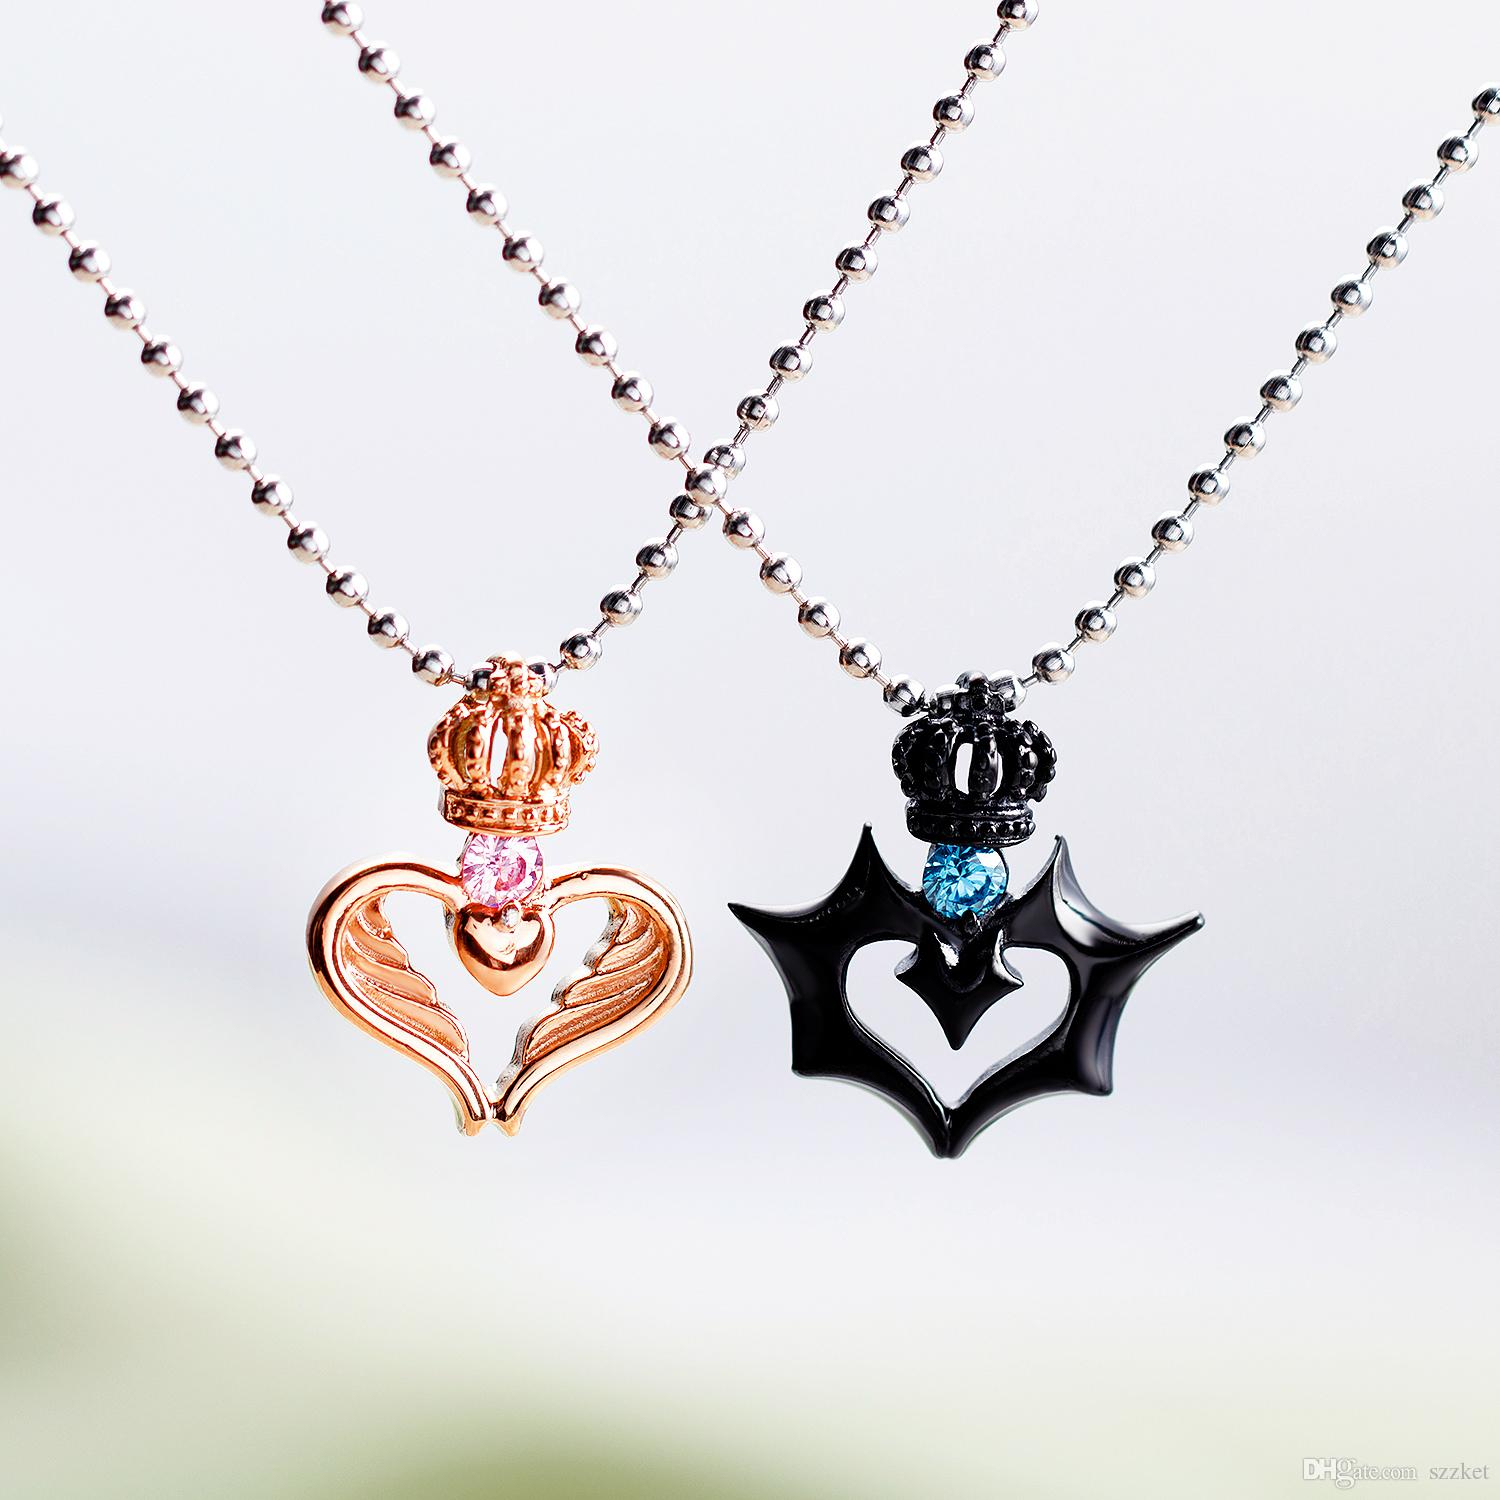 Couple Necklace Romantic Heart Pendant Necklace Women Men Couple Jewelry Black Rose Gold Crown Stainless Steel Zircon Chain Necklace Inside Most Recent Joined Hearts Chain Necklaces (View 15 of 25)